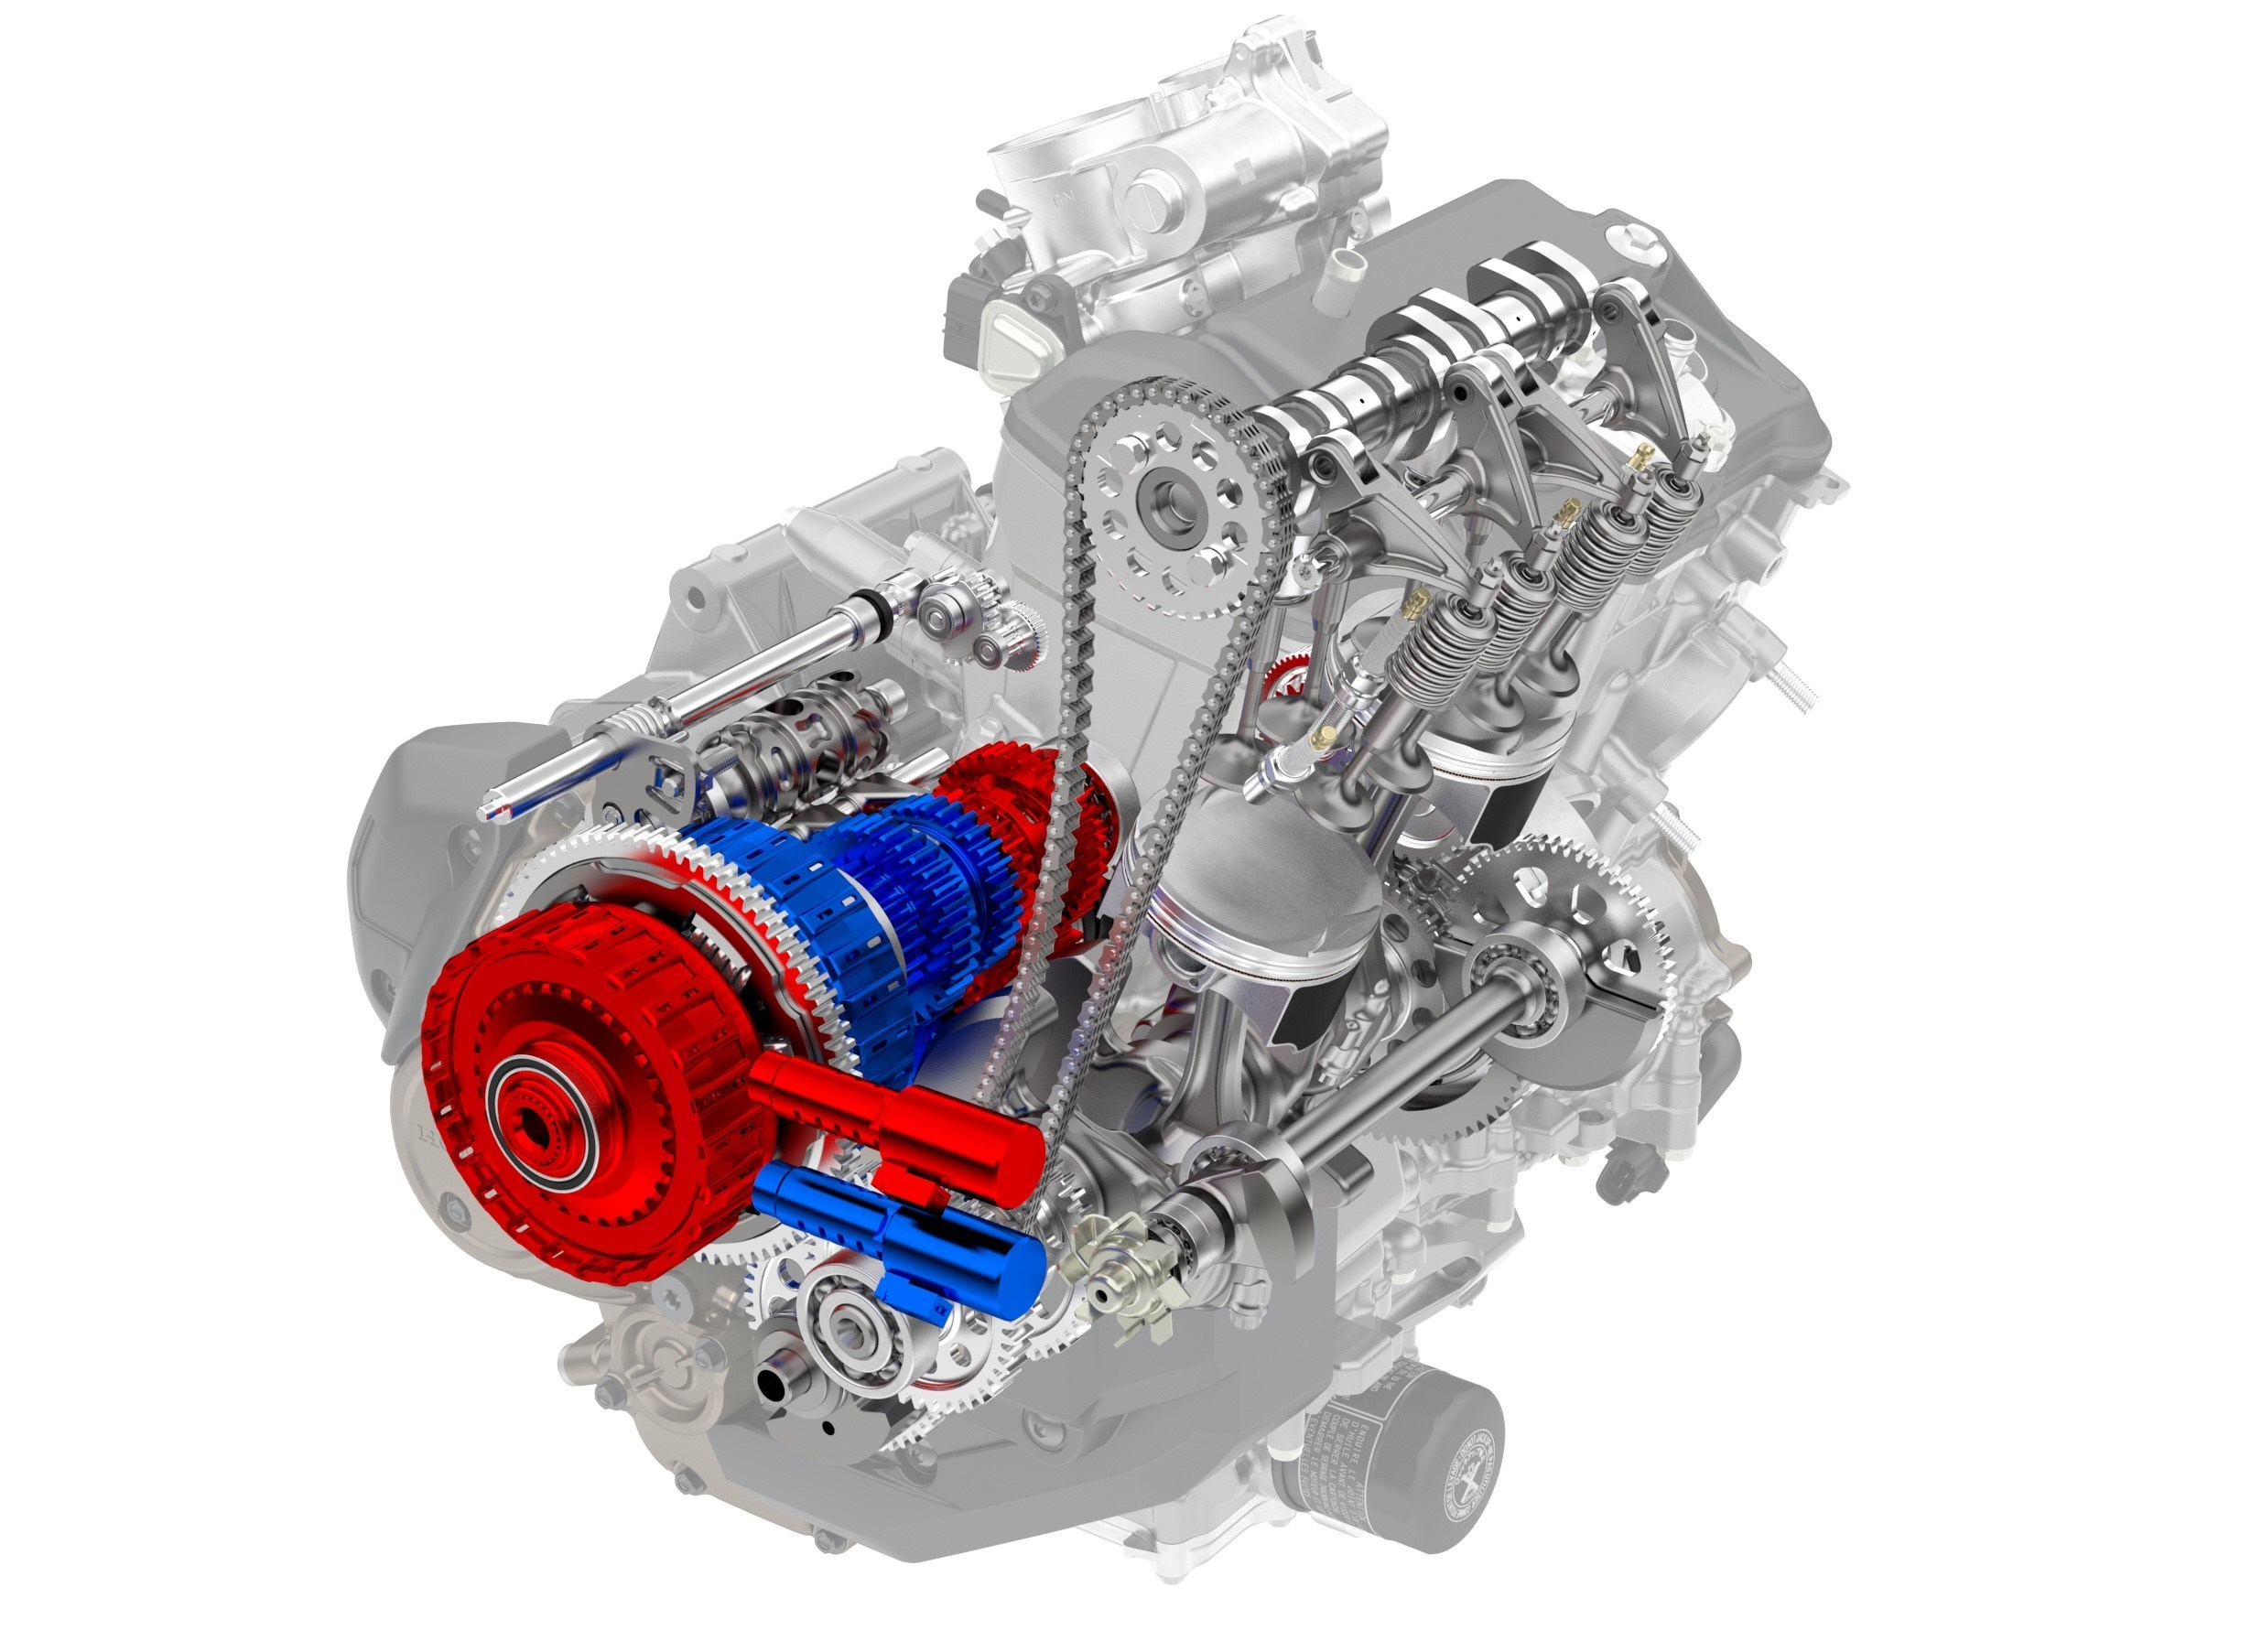 305925 Honda Reaches Ten Years Of Production Of Dual Clutch Transmission